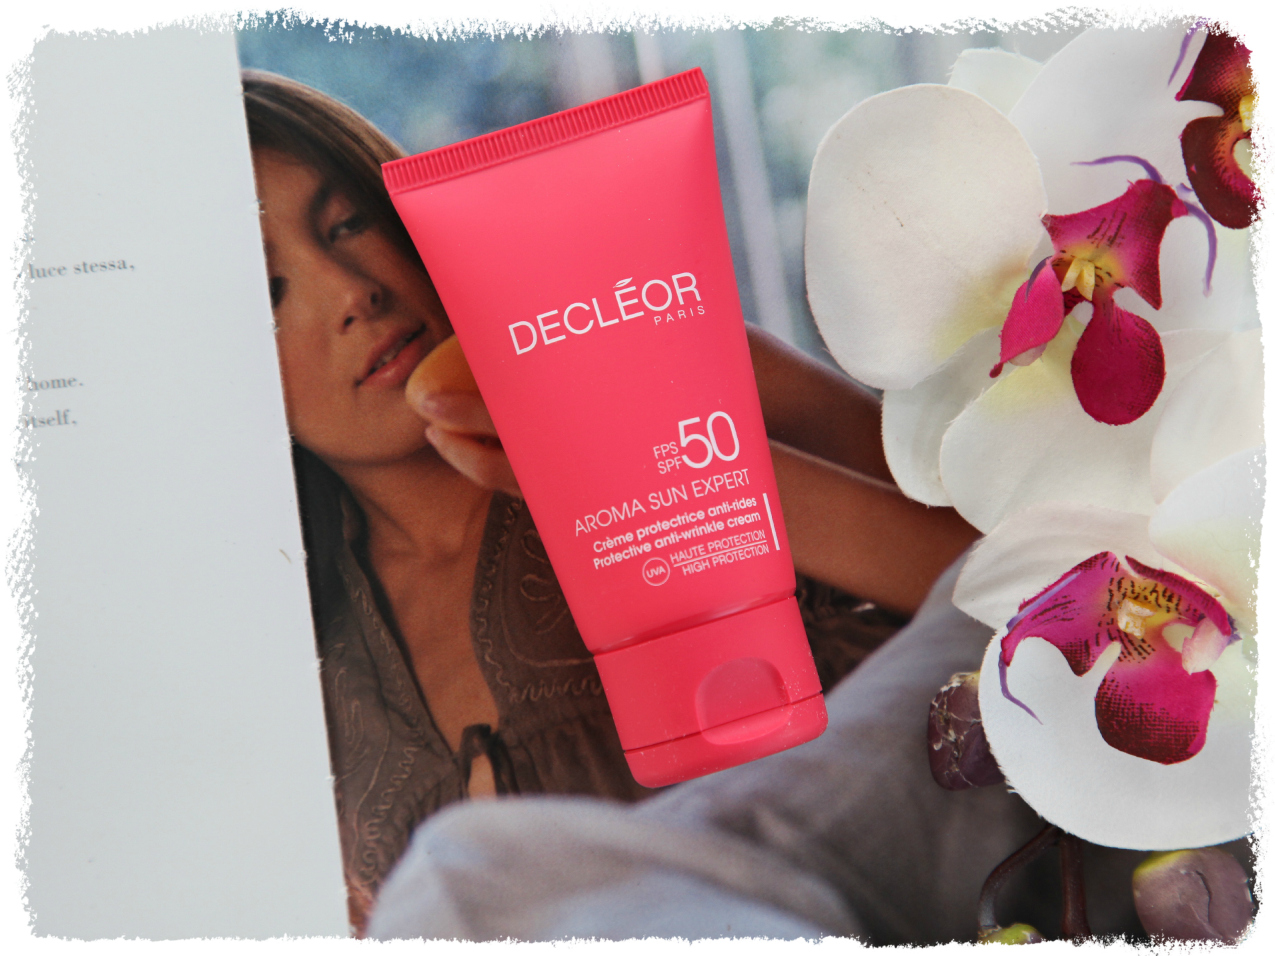 Beauty tips di Maggio: solari, creme protettive e fragranze con il profumo del mare, alessia milanese, thechilicool, fashion blog, fashion blogger,decleor , cool water davidoff